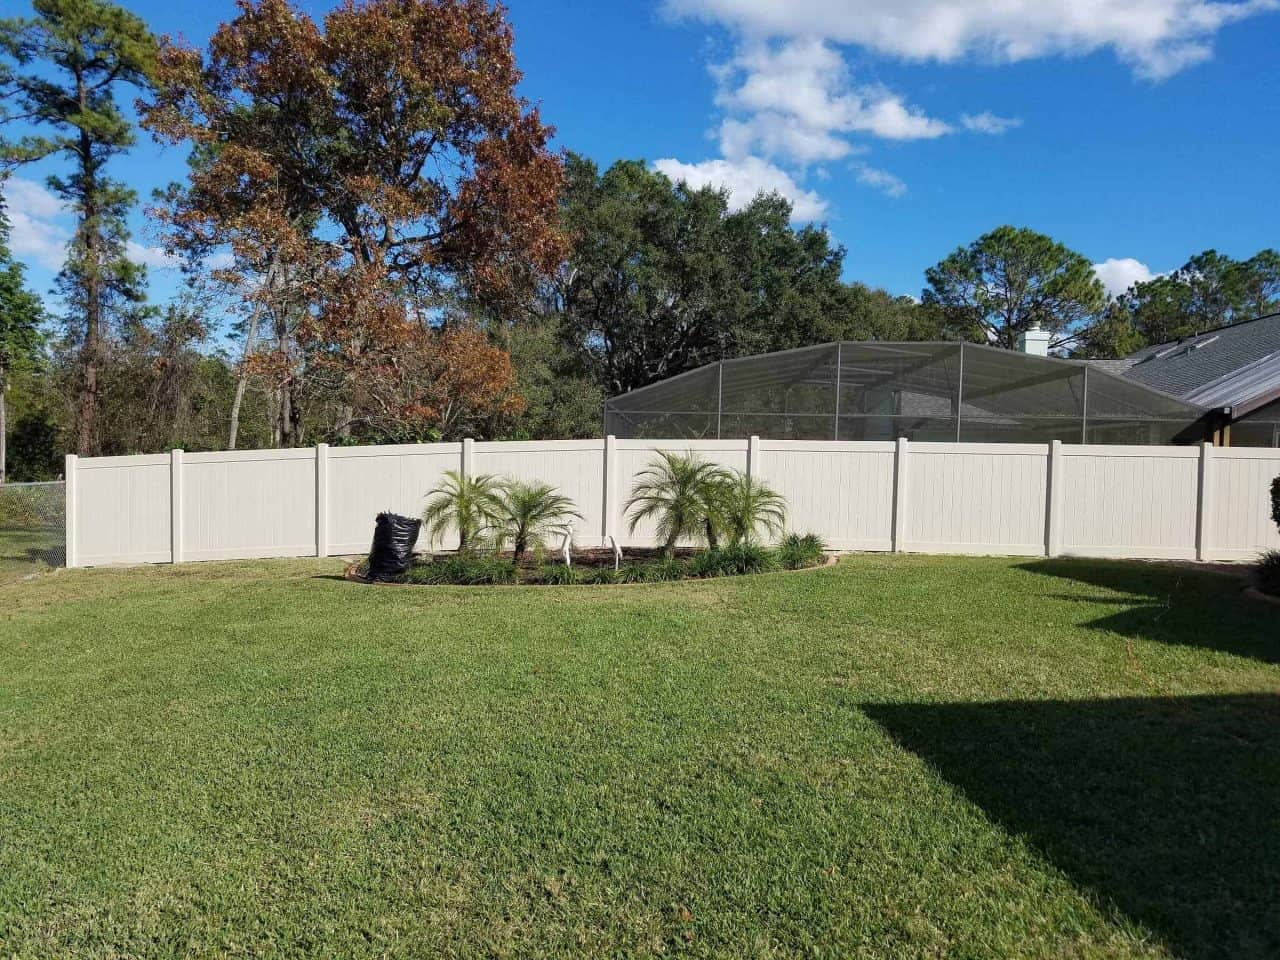 https://www.superiorfenceandrail.com/wp-content/uploads/2017/05/Permitting-a-fence-in-orlando-photo-1280x960.jpg